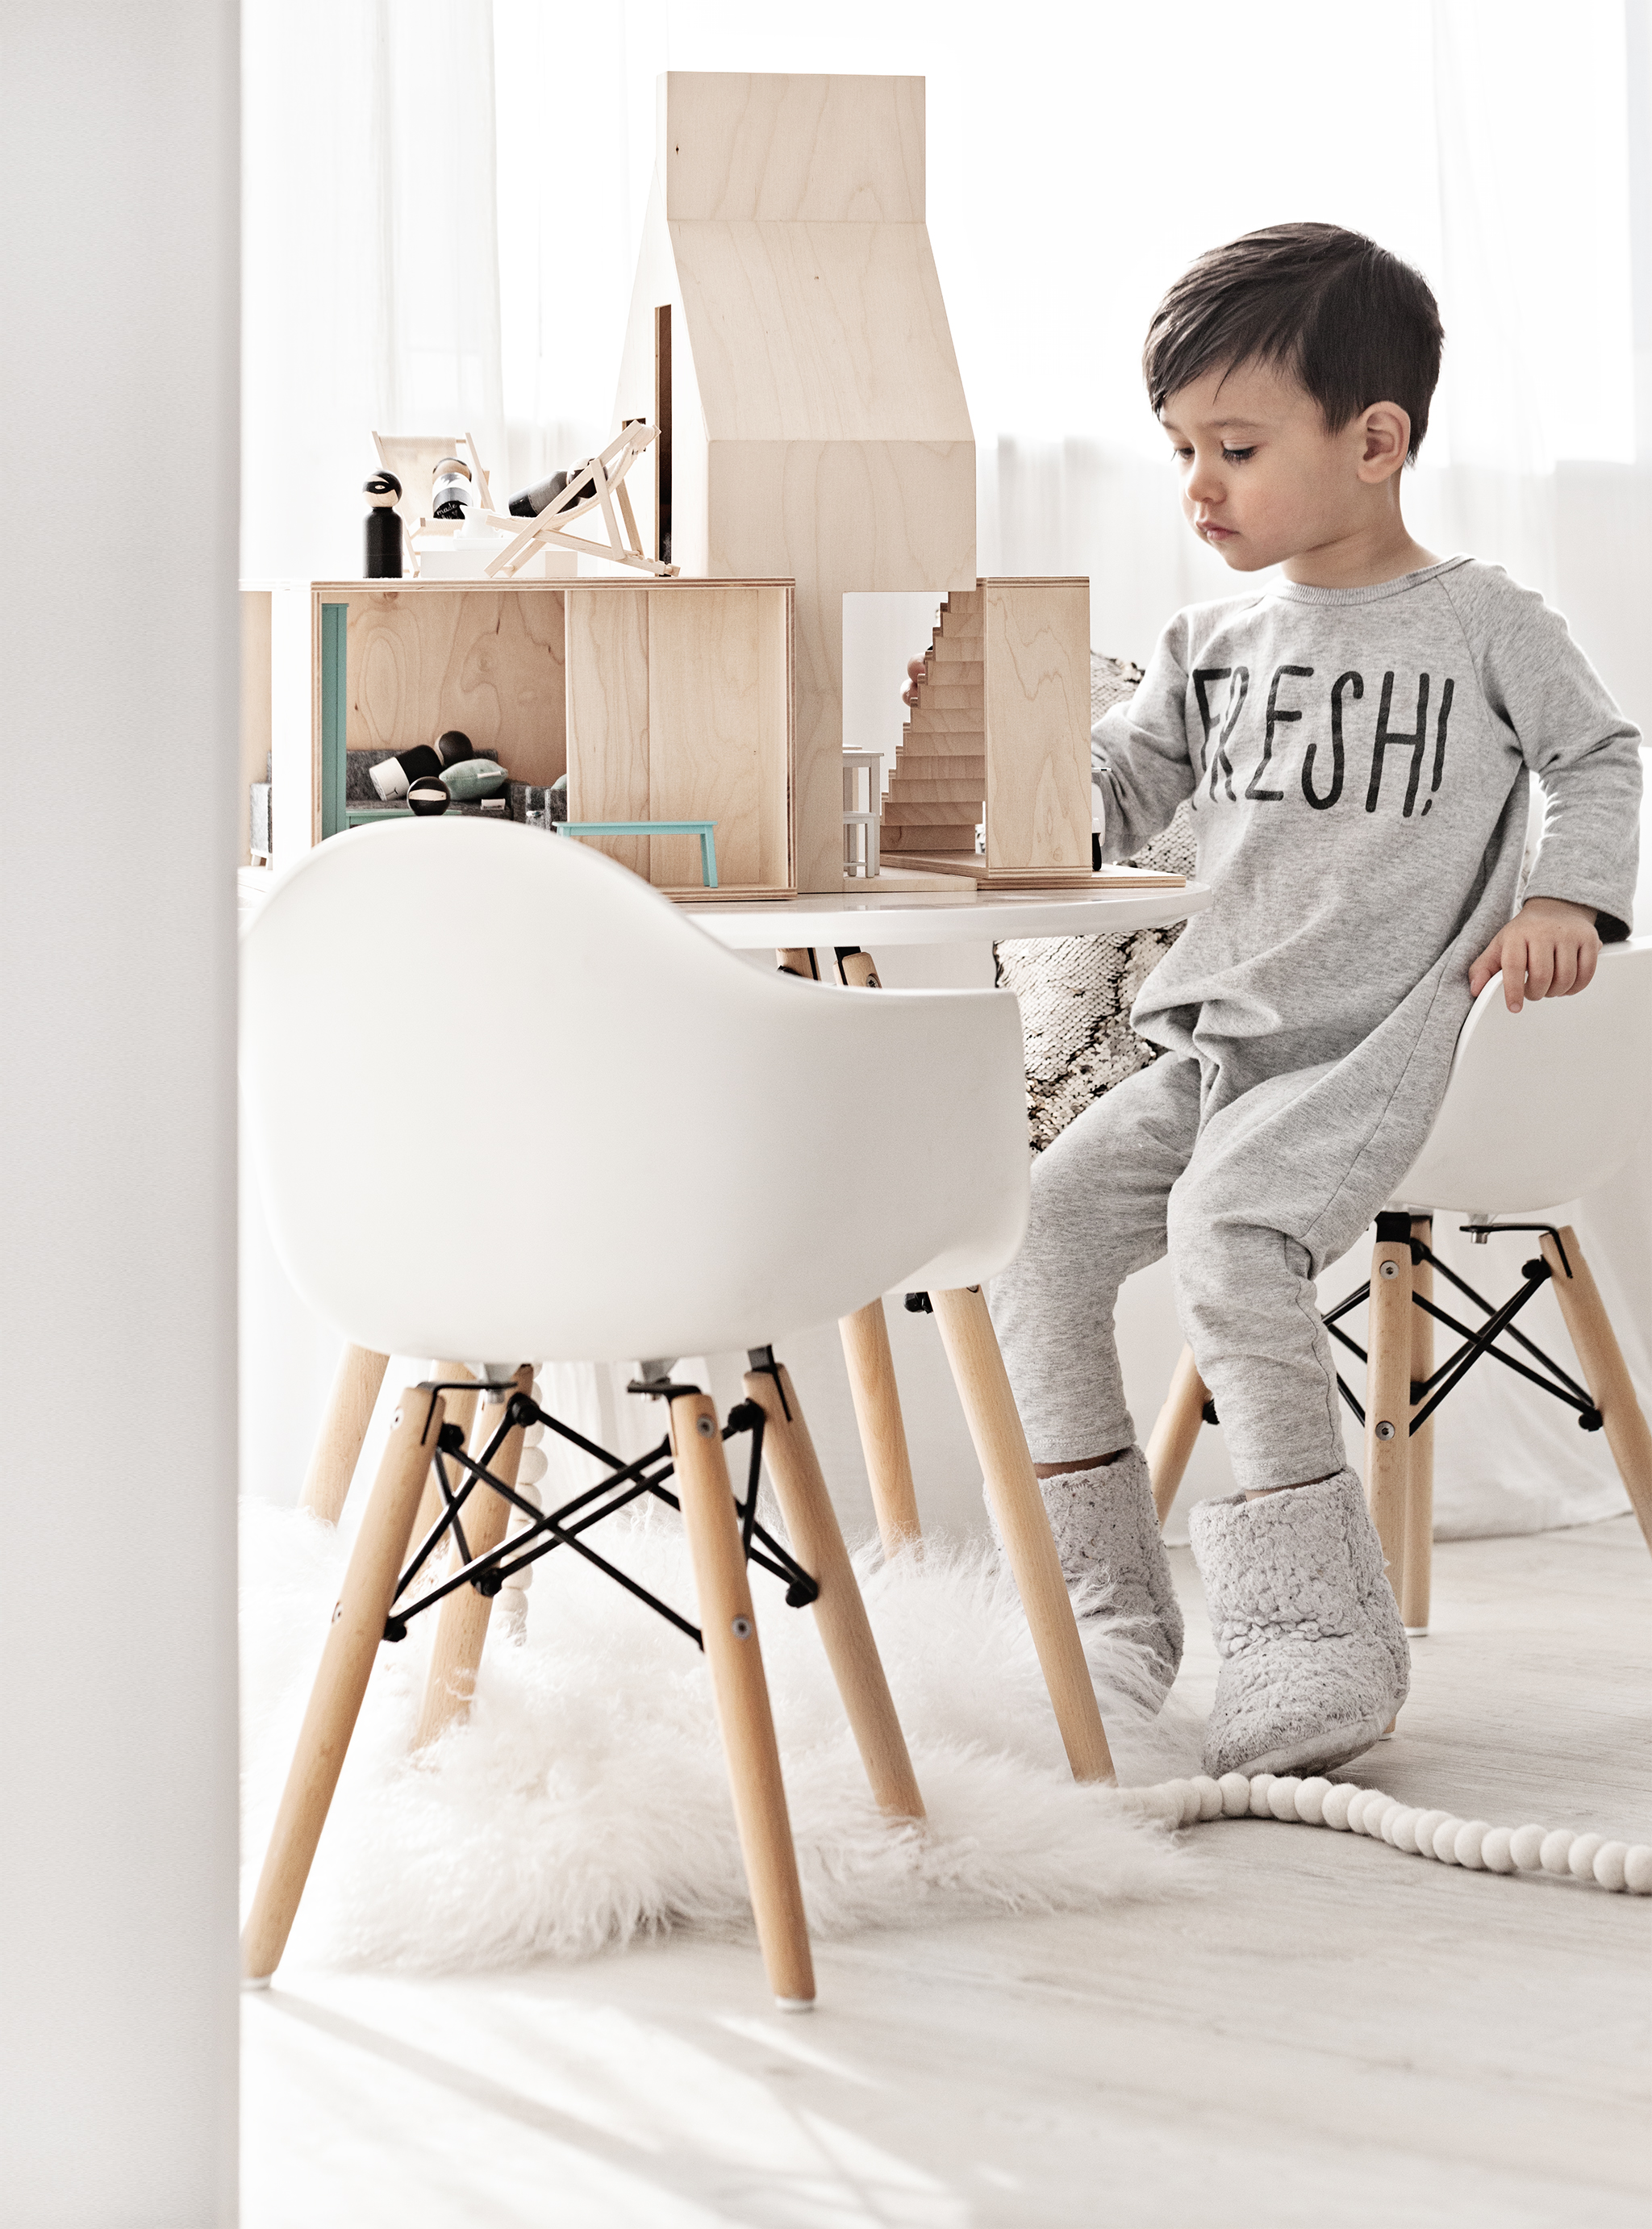 Dollhouse & Furnitures from   Boomini Dollhouse   | White Mongolian Sheepskin Rug from   Milabert  |   Jumpsuit from   Little Urban Apparel  | Peg Dolls from   Made by Layla